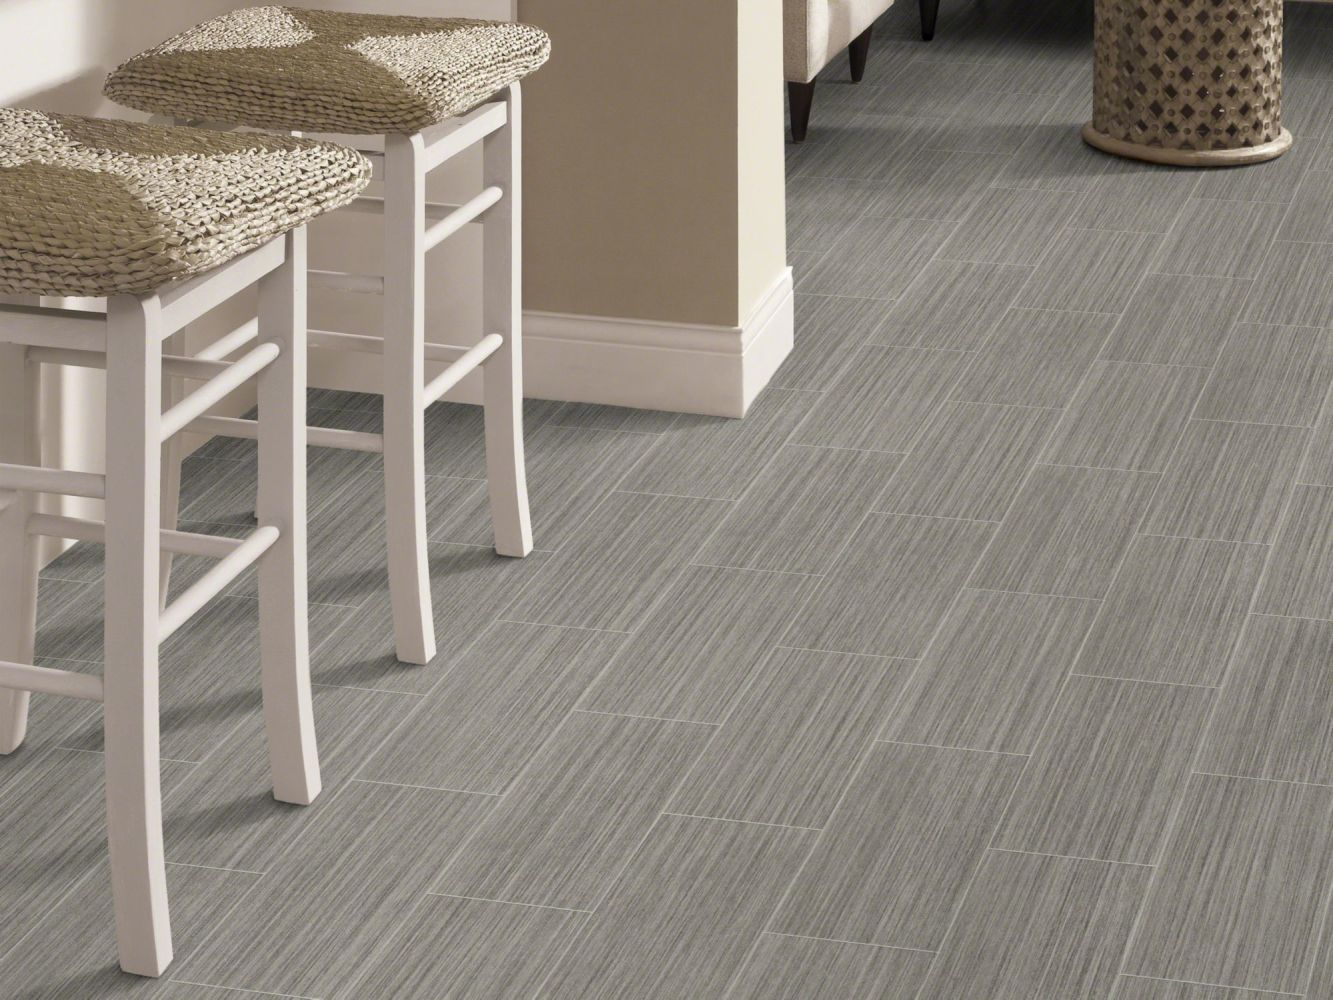 Shaw Floors Resilient Property Solutions Highlands II Legacy 00170_VG076